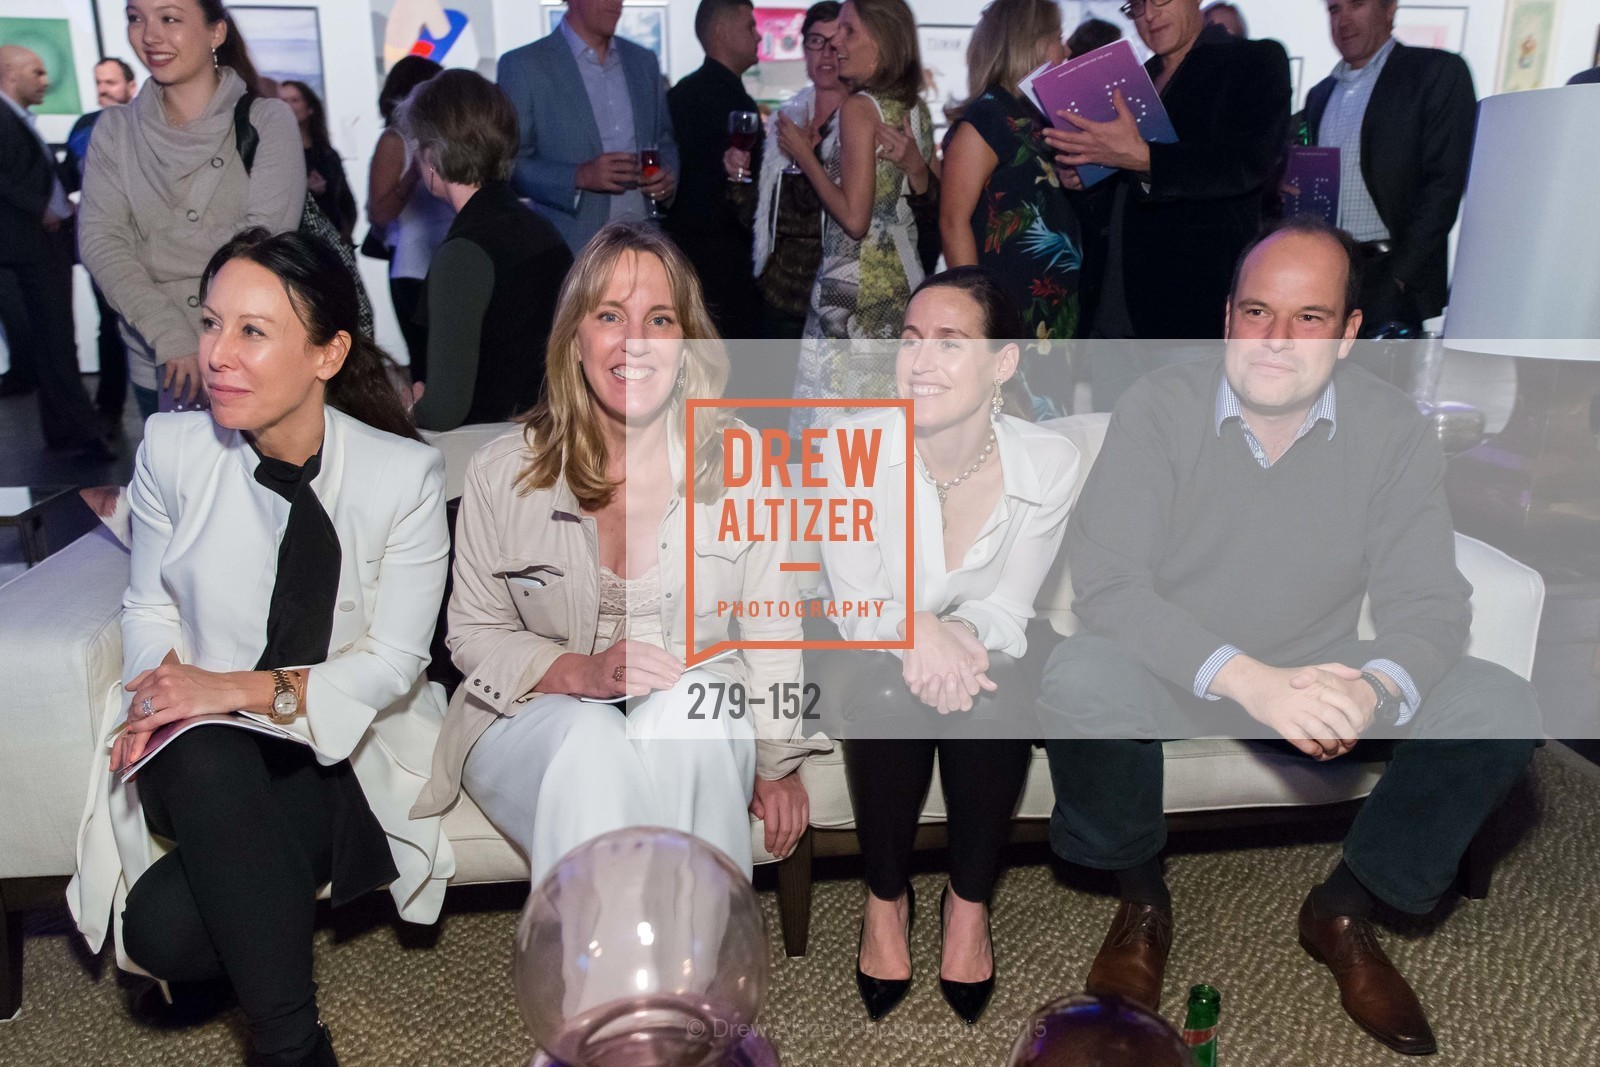 Maria Pebey, Patrice Lovato, Walter Lovato, Headlands Center for the Arts Benefit Auction, Fort Mason Festival, Pavilon, June 2nd, 2015,Drew Altizer, Drew Altizer Photography, full-service agency, private events, San Francisco photographer, photographer california